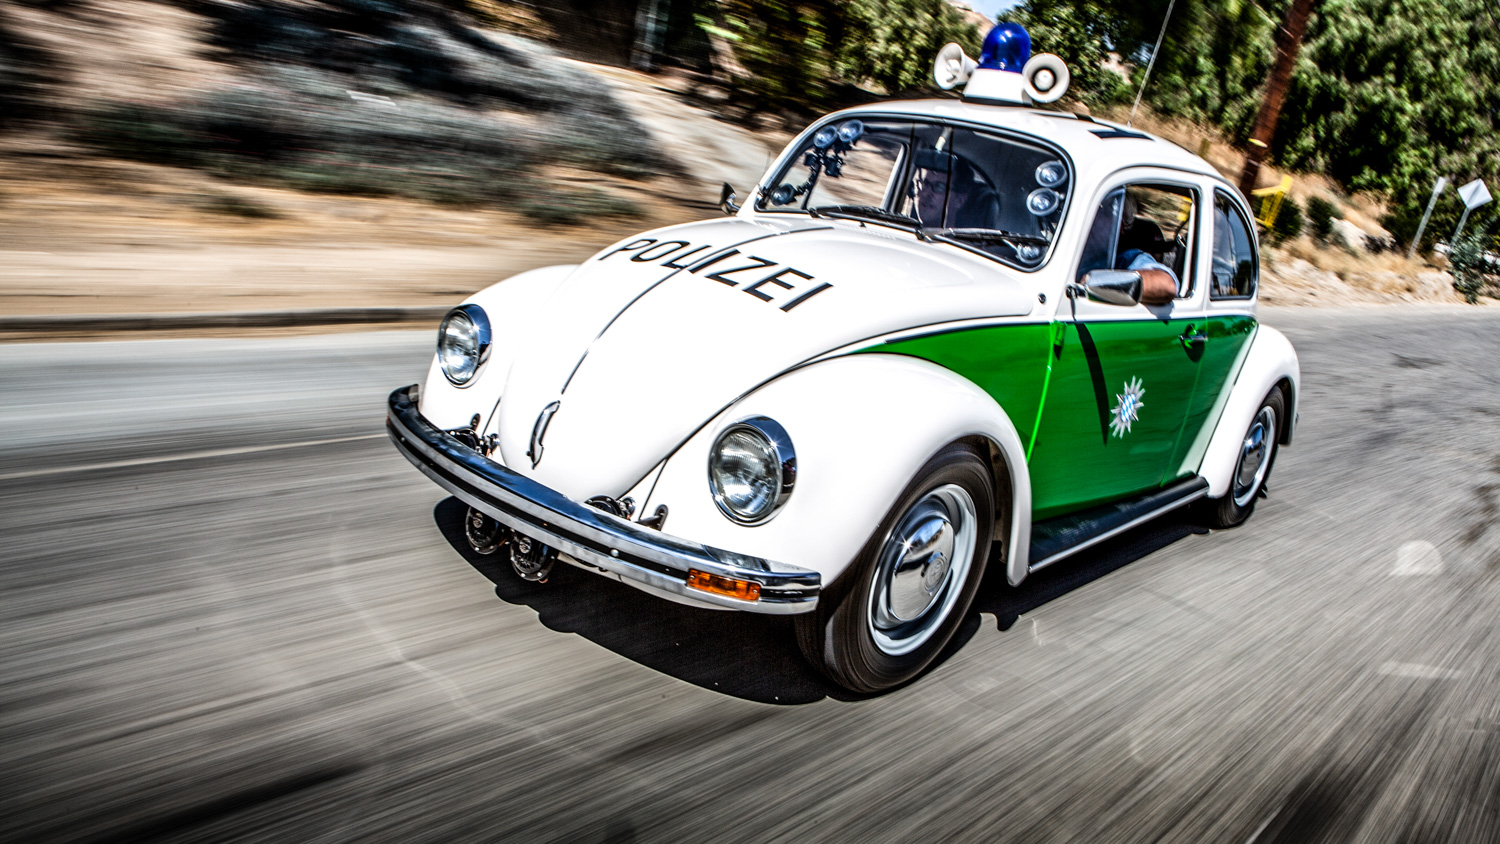 Bug cop car is best cop car thumbnail